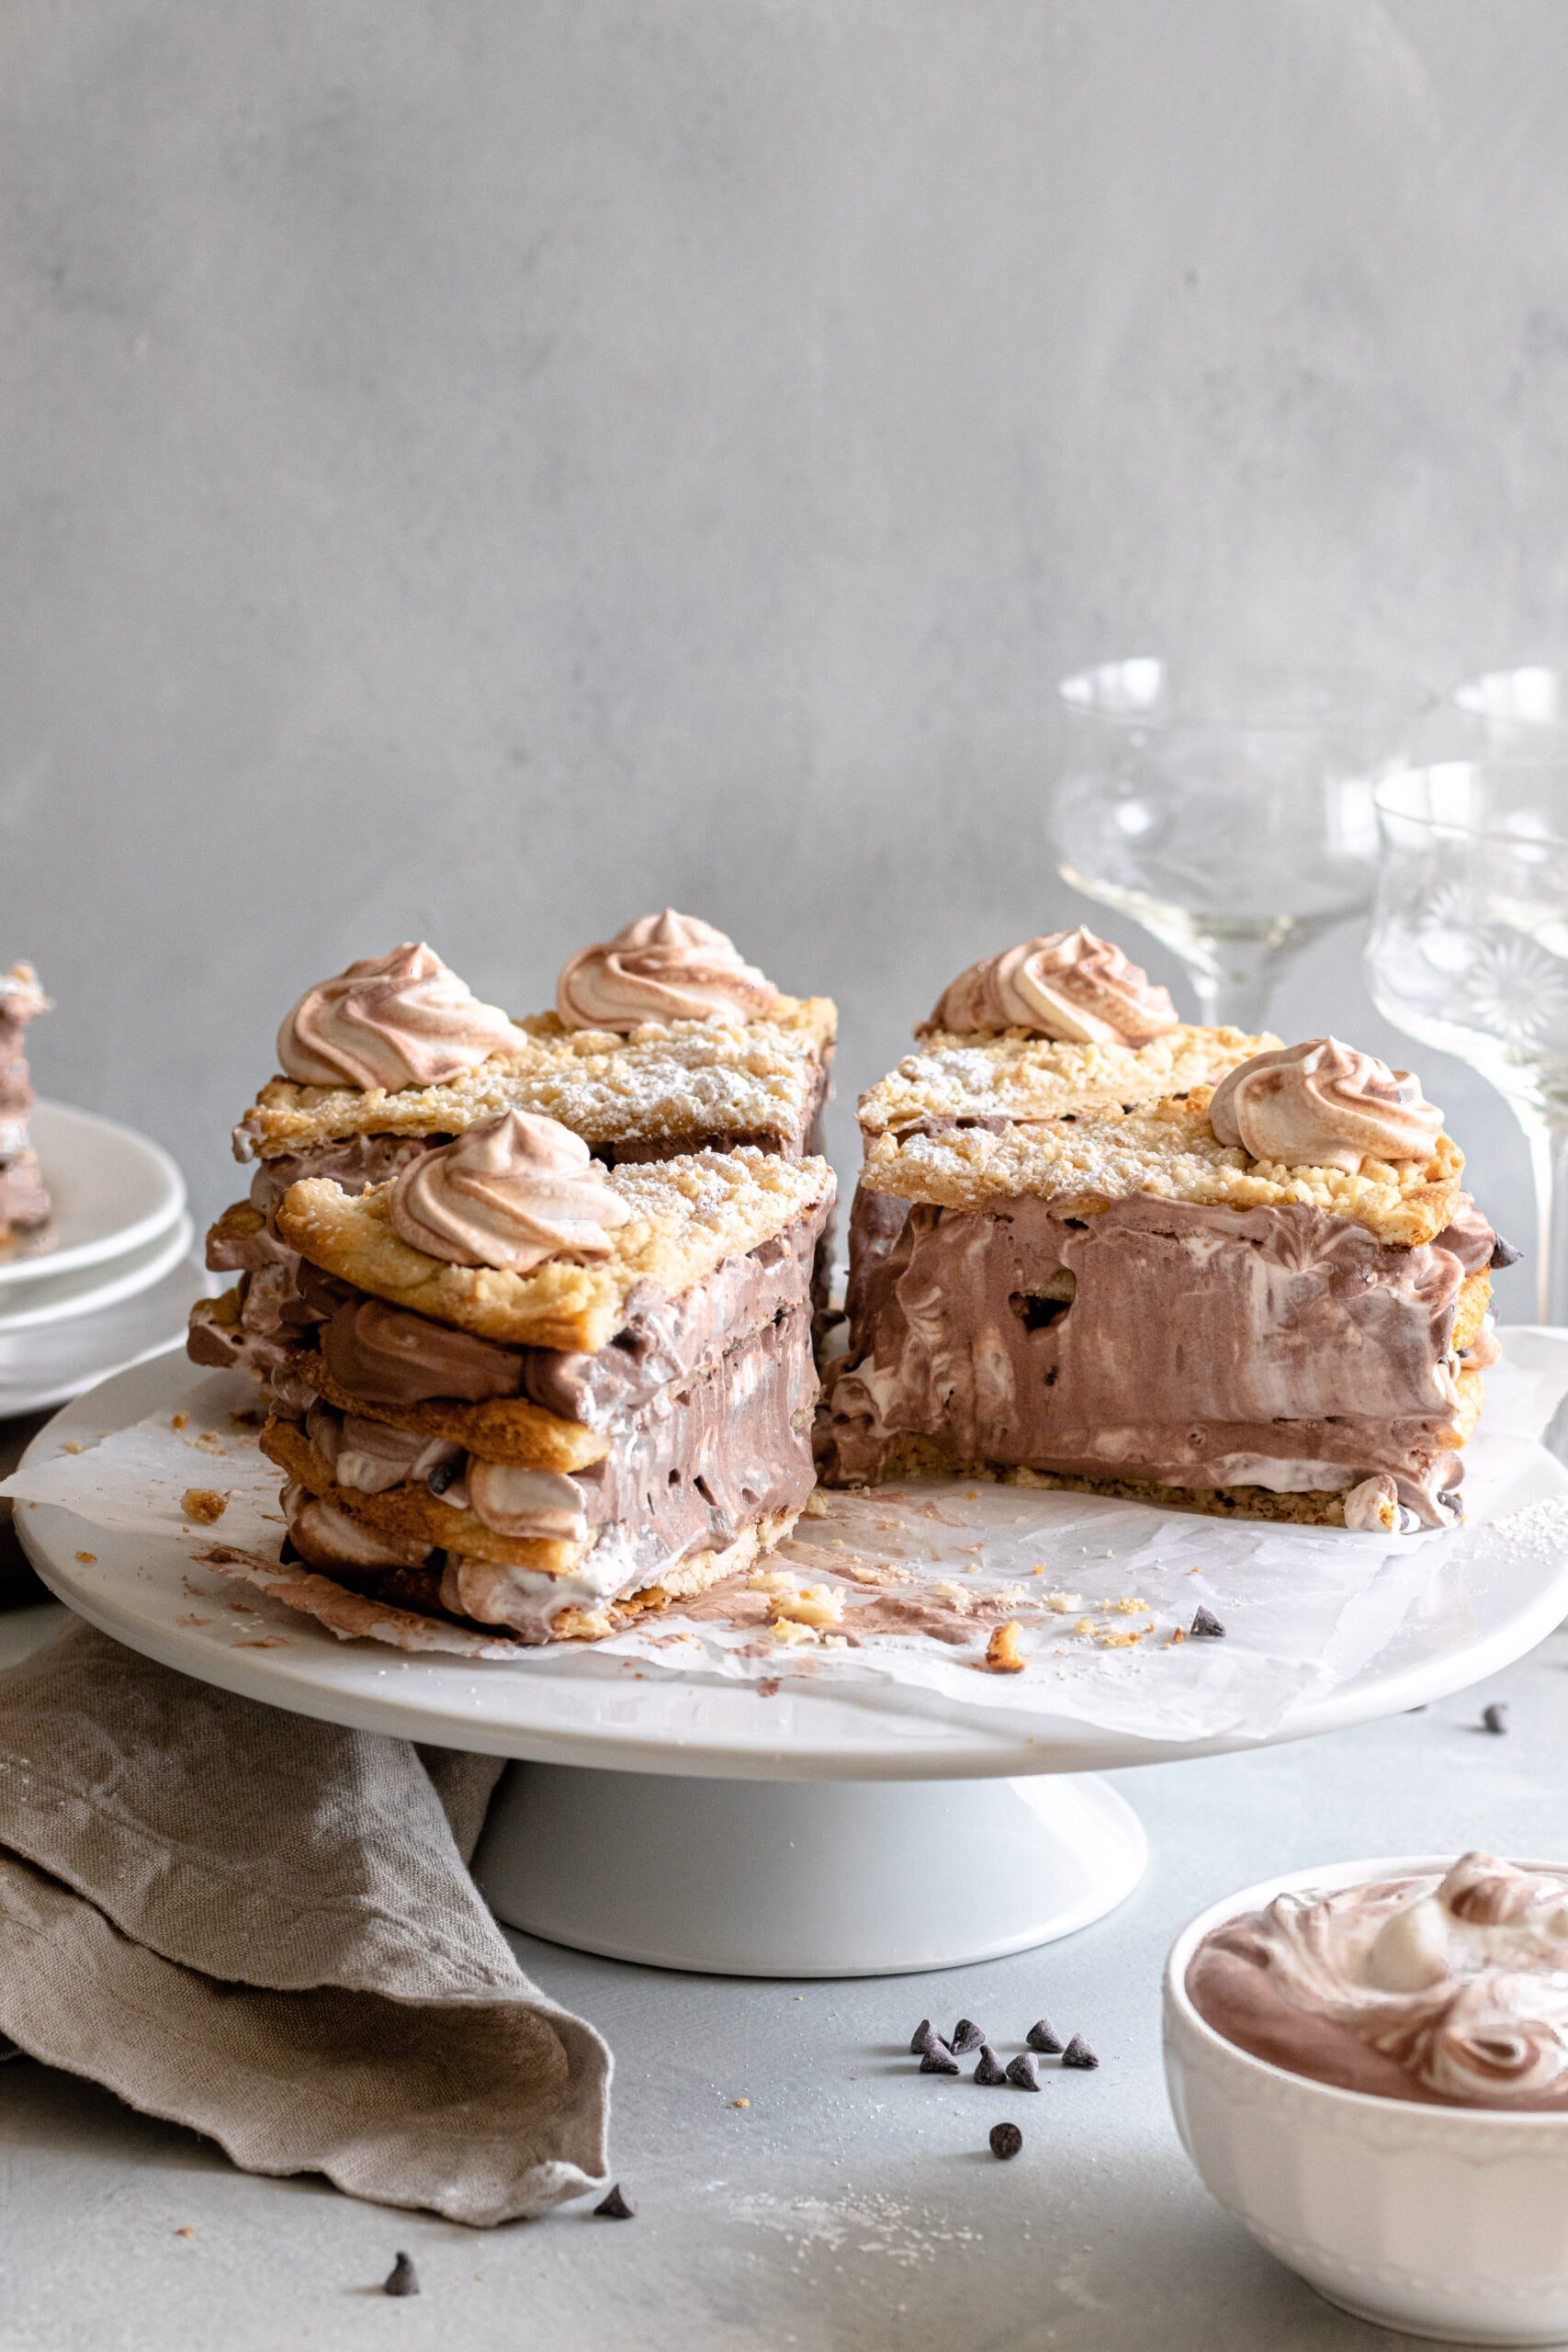 Image of layered Blättertorte Cake with marbled chocolate and plain whipped cream.